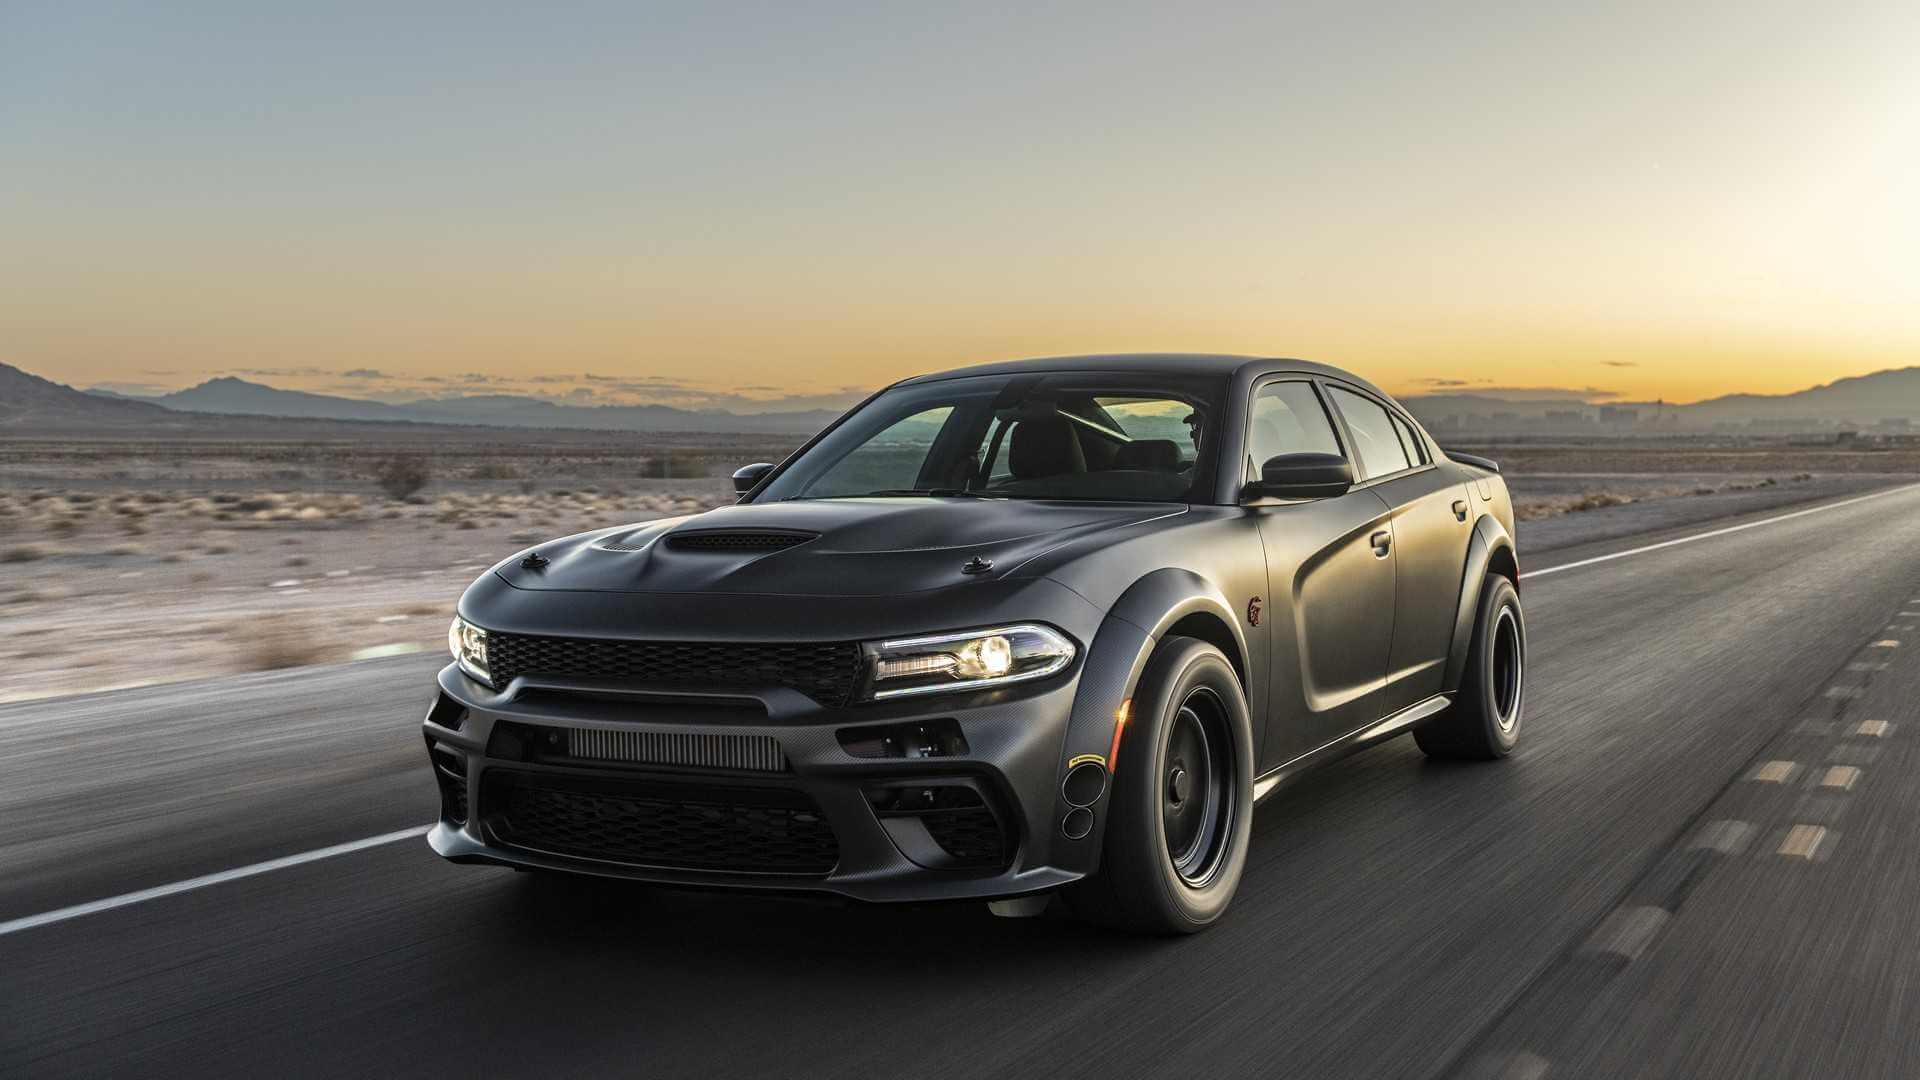 Dodge Charger SpeedKore: frontal.